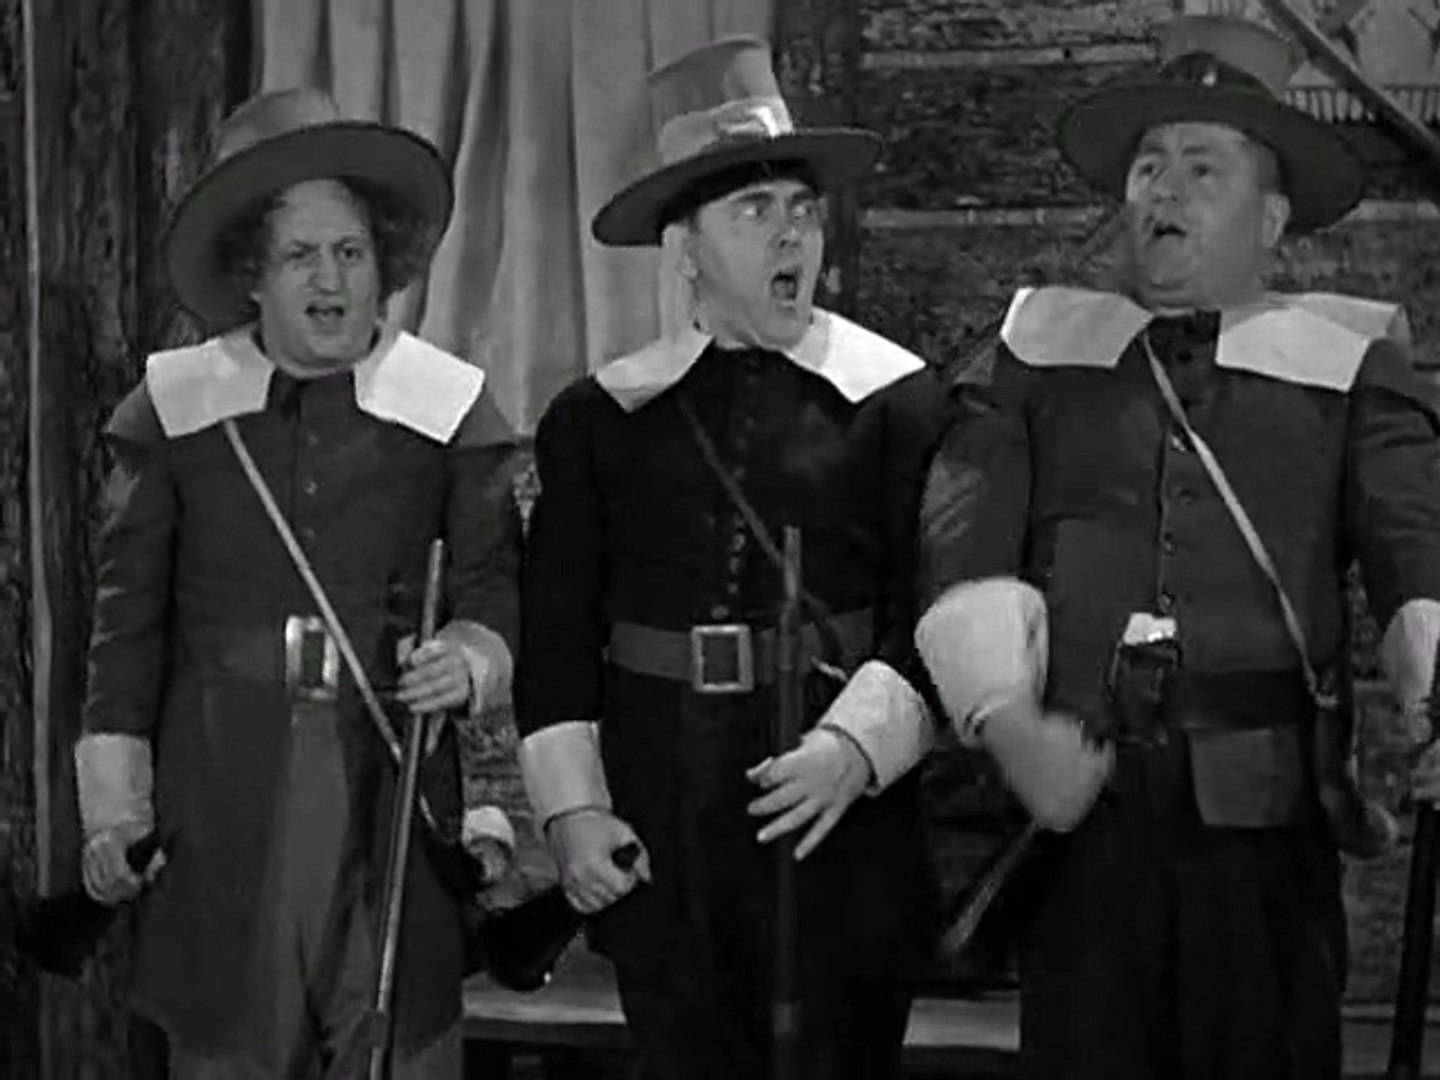 Moe Howard, Larry Fine, and Curly Howard in Back to the Woods (1937)